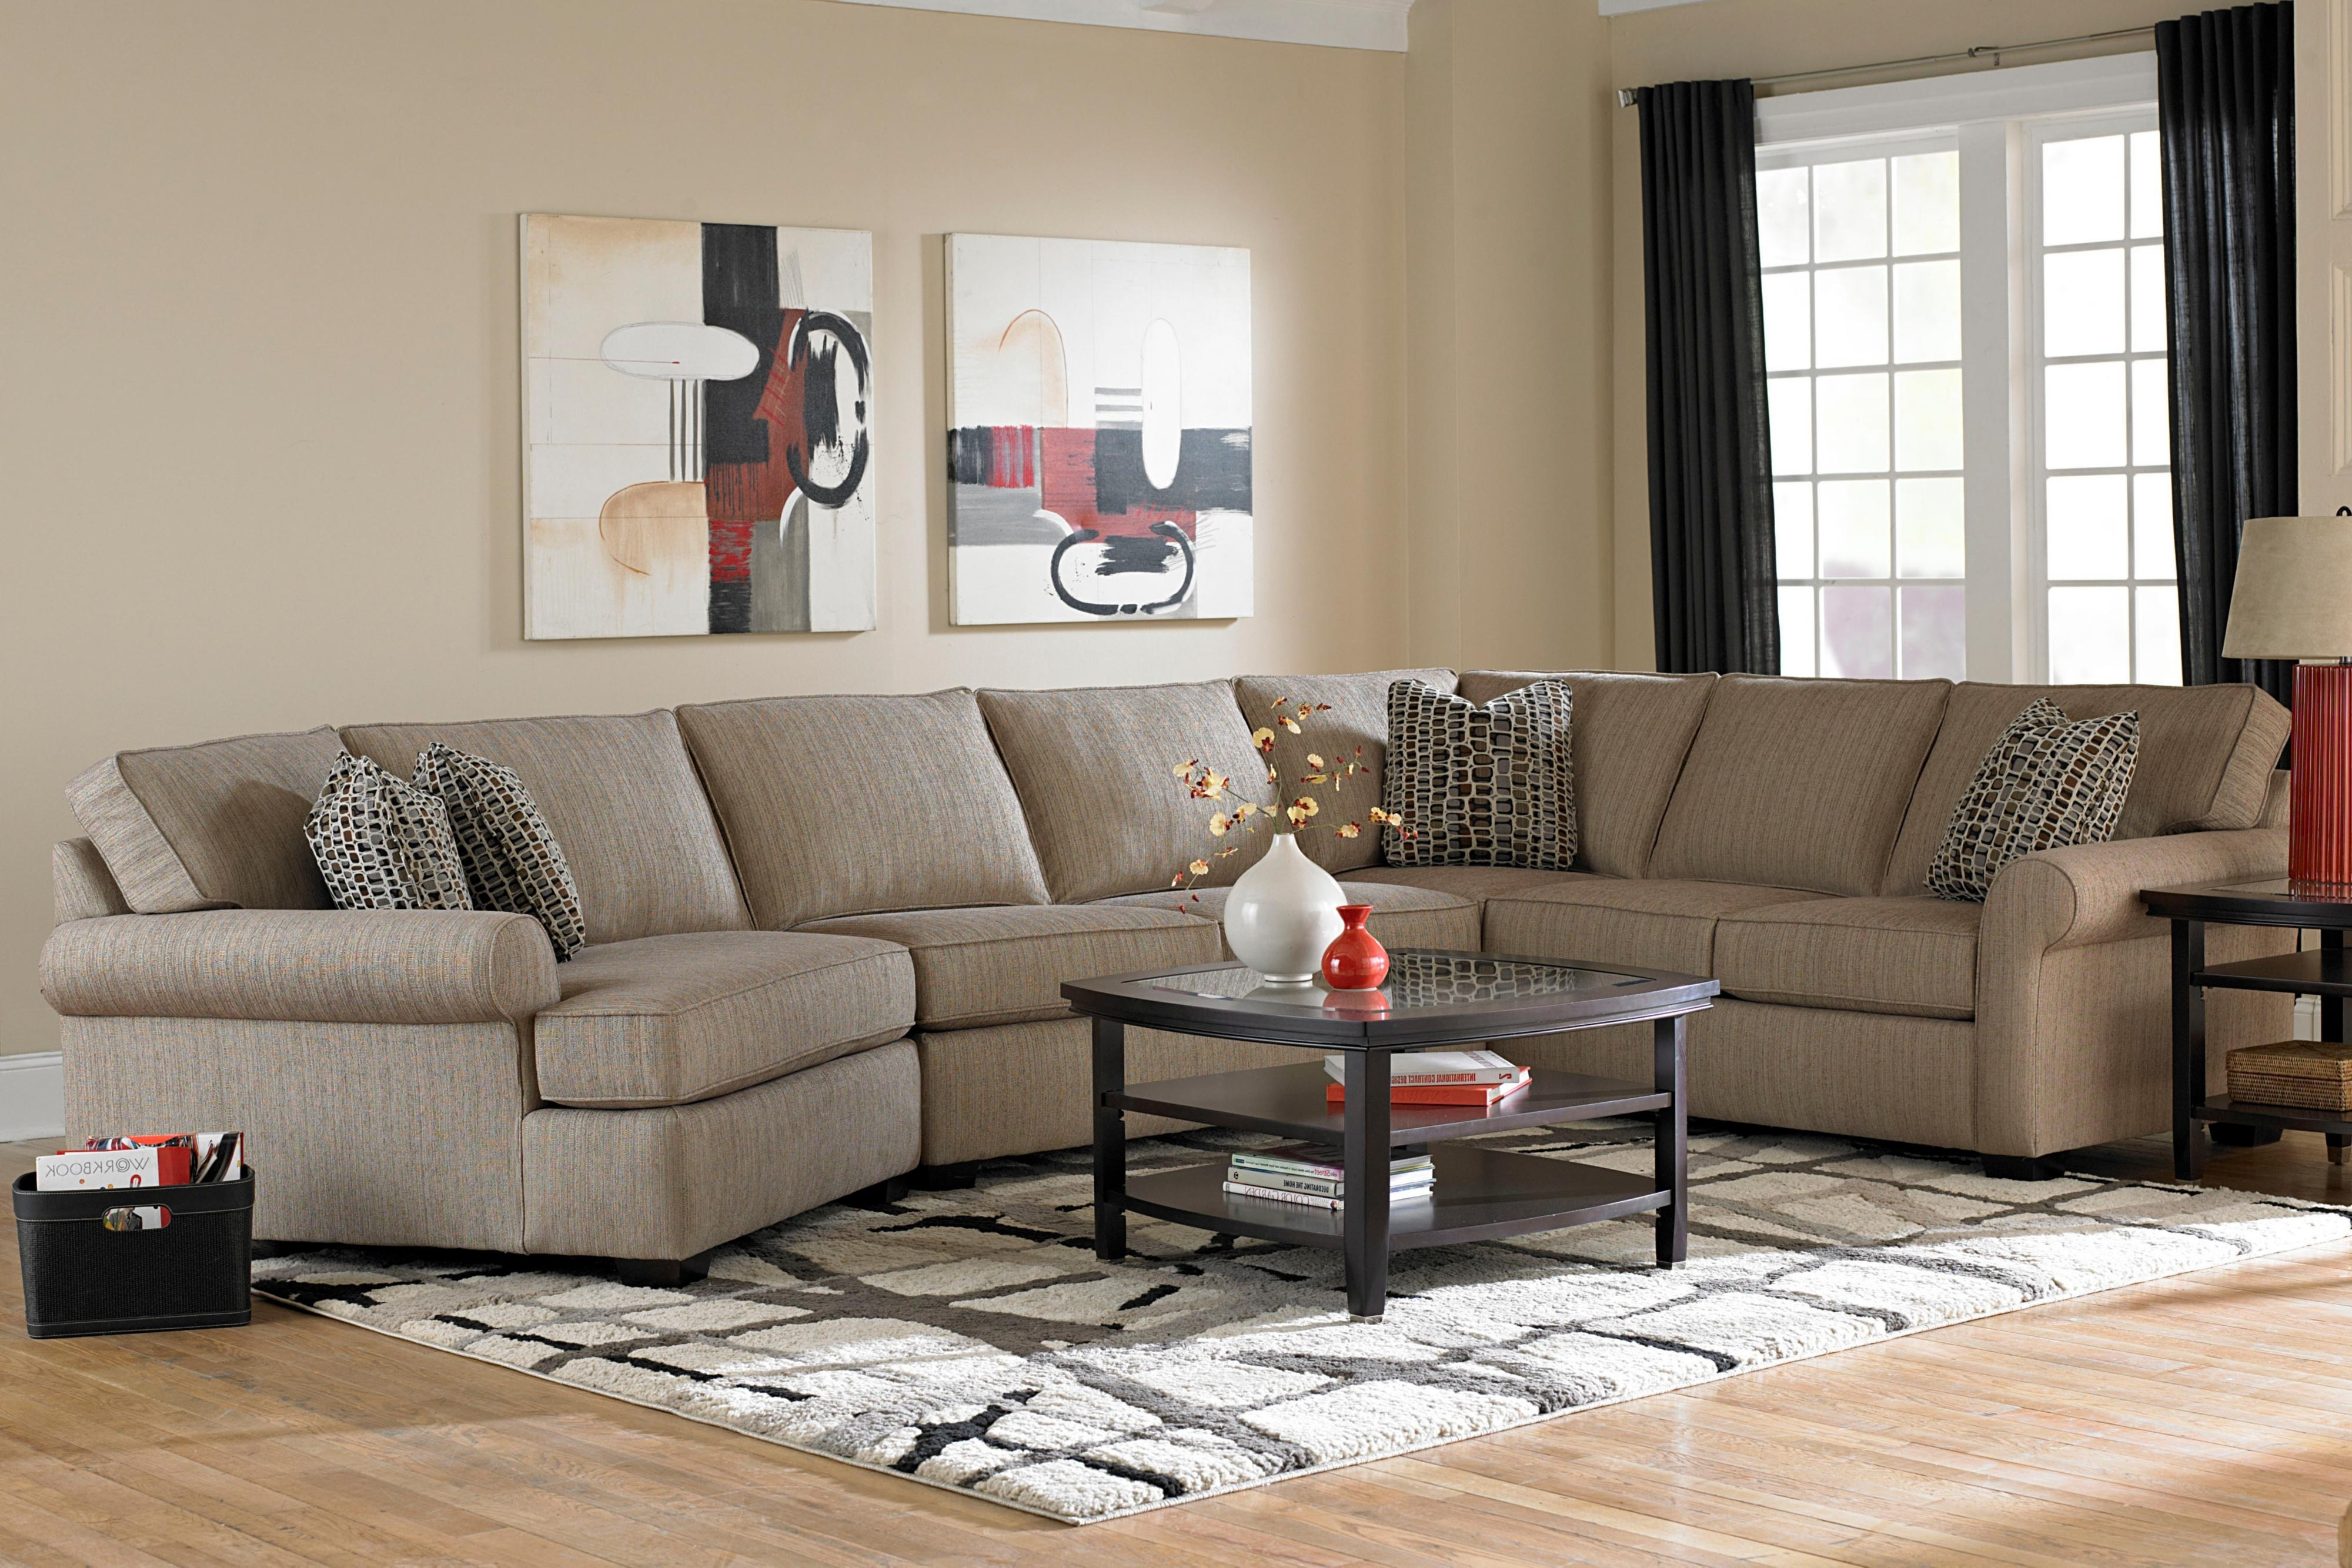 Broyhill Furniture Ethan Transitional Sectional Sofa With Right With Favorite El Paso Tx Sectional Sofas (View 15 of 20)